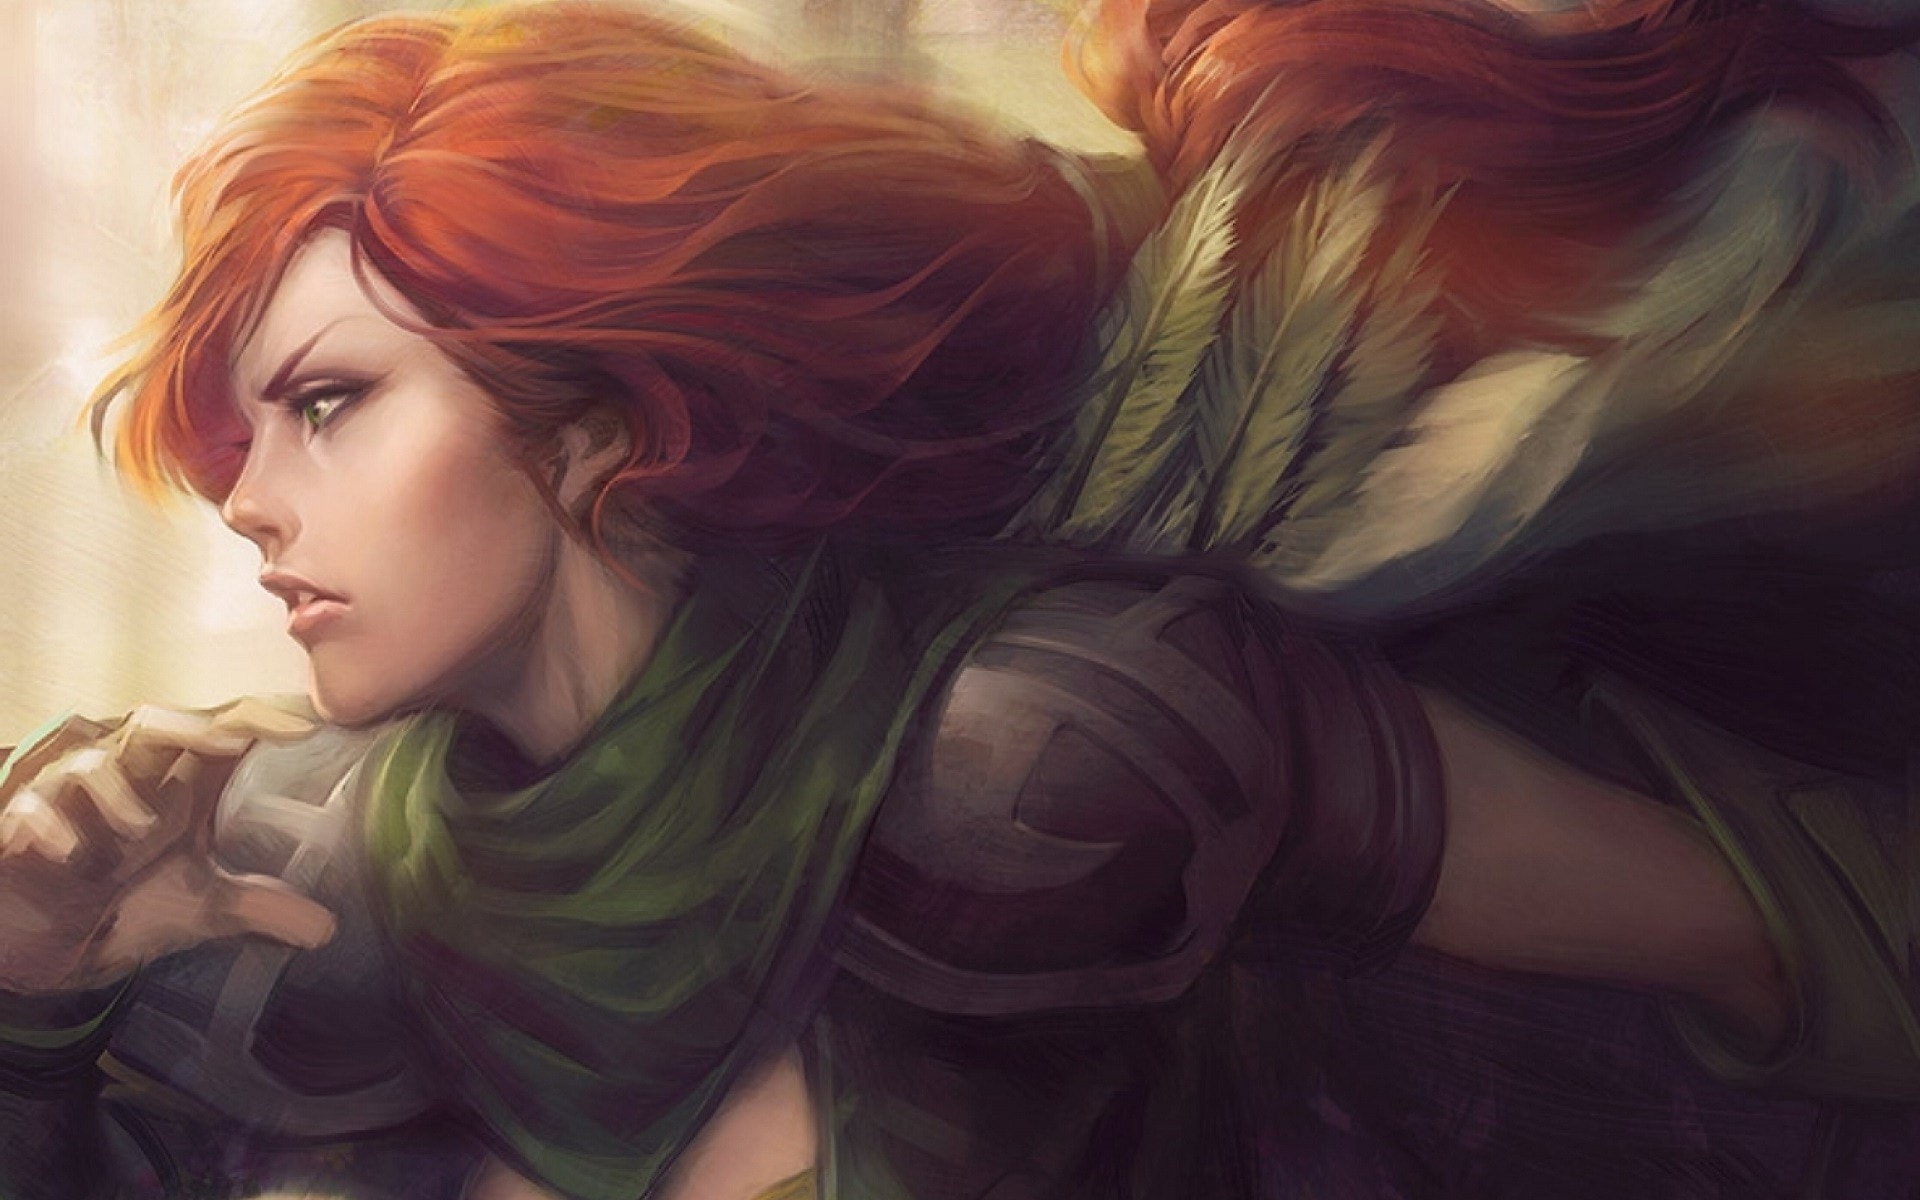 Dota2 : Windranger for mobile